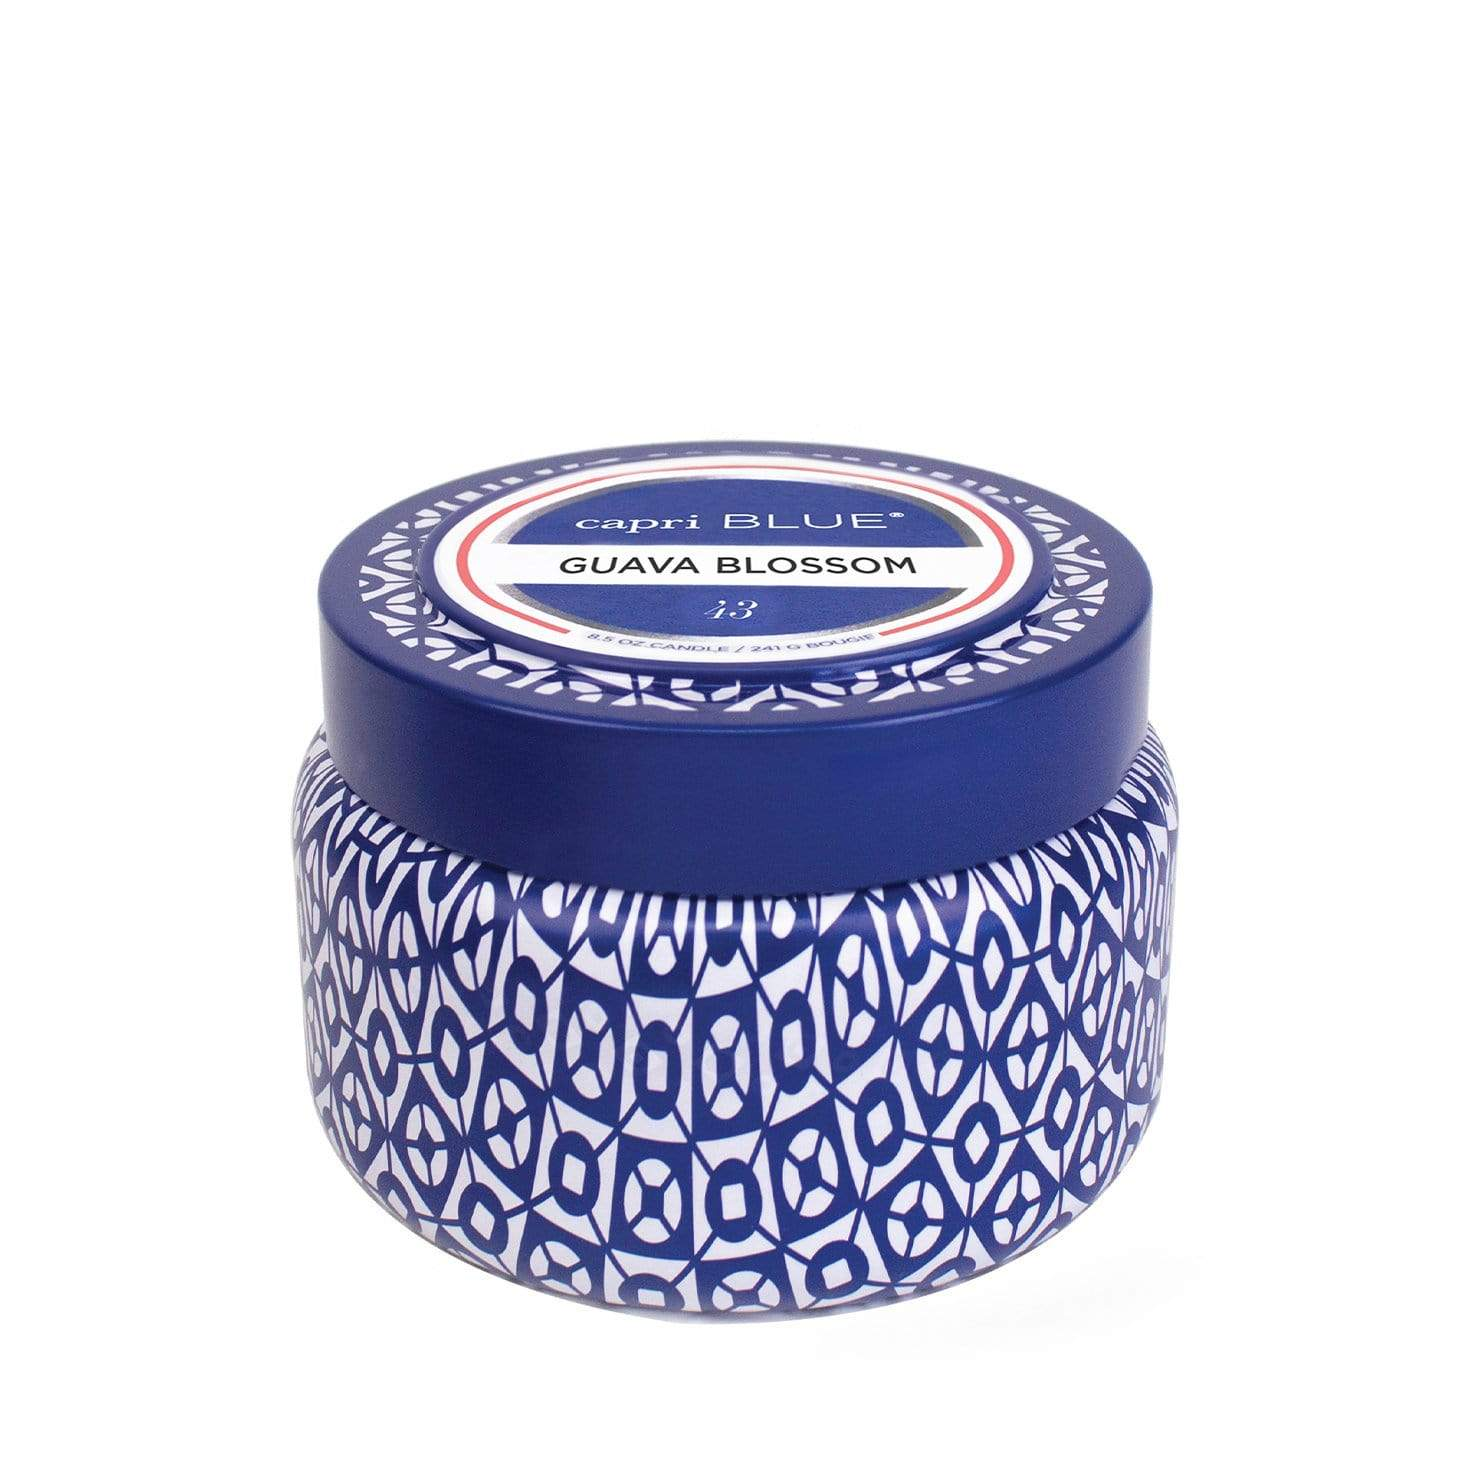 Capri Blue Travel Candle - Guava Blossom